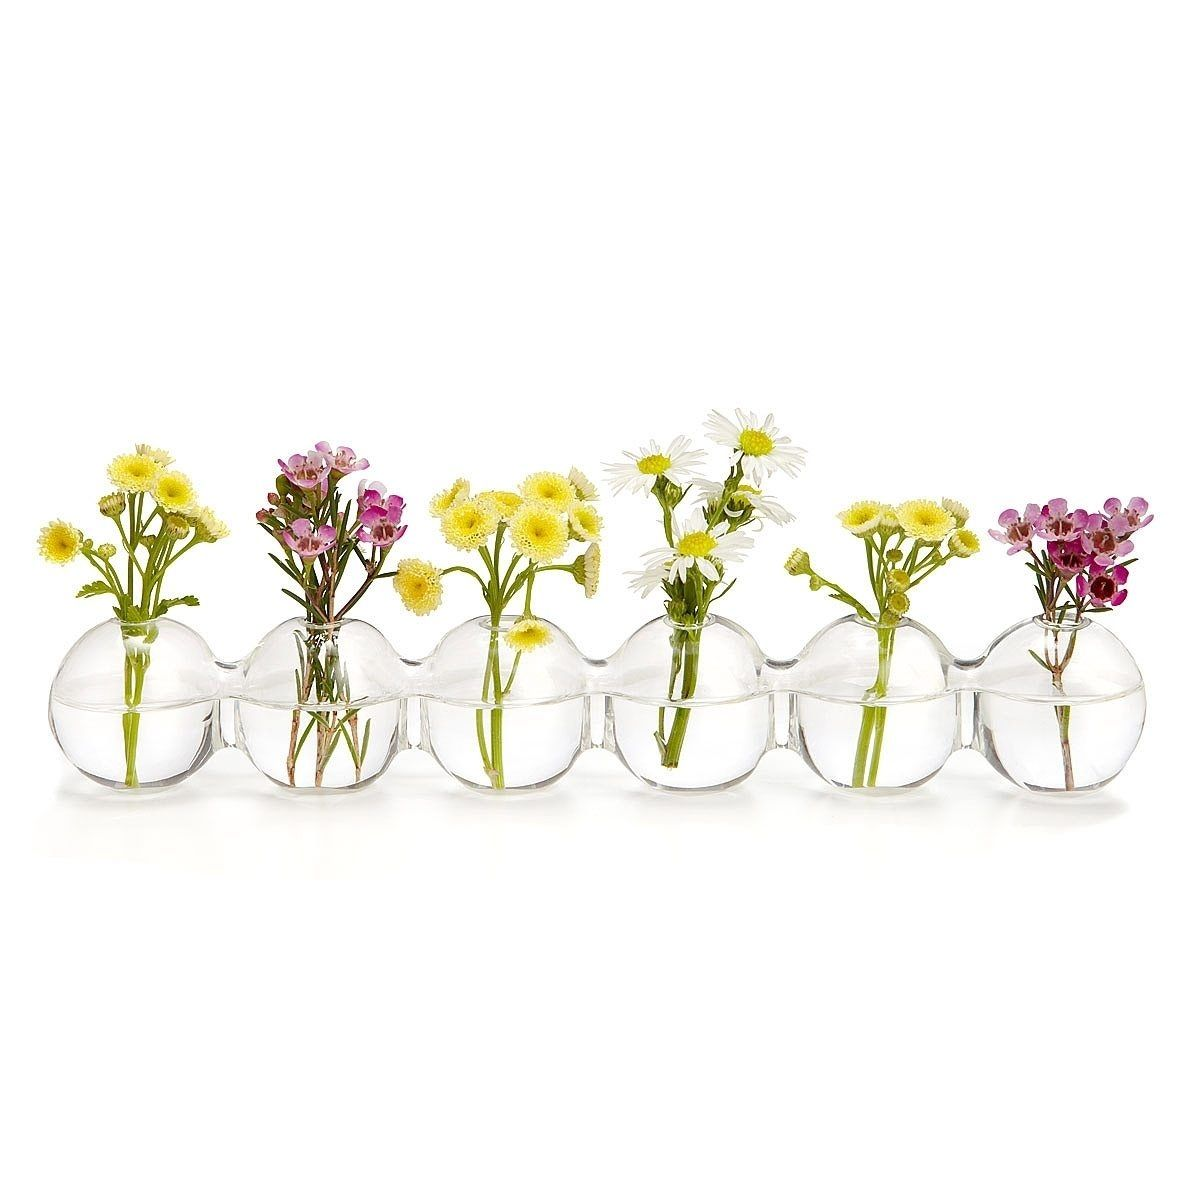 225 & Small Flower Vases Bulk | Vase